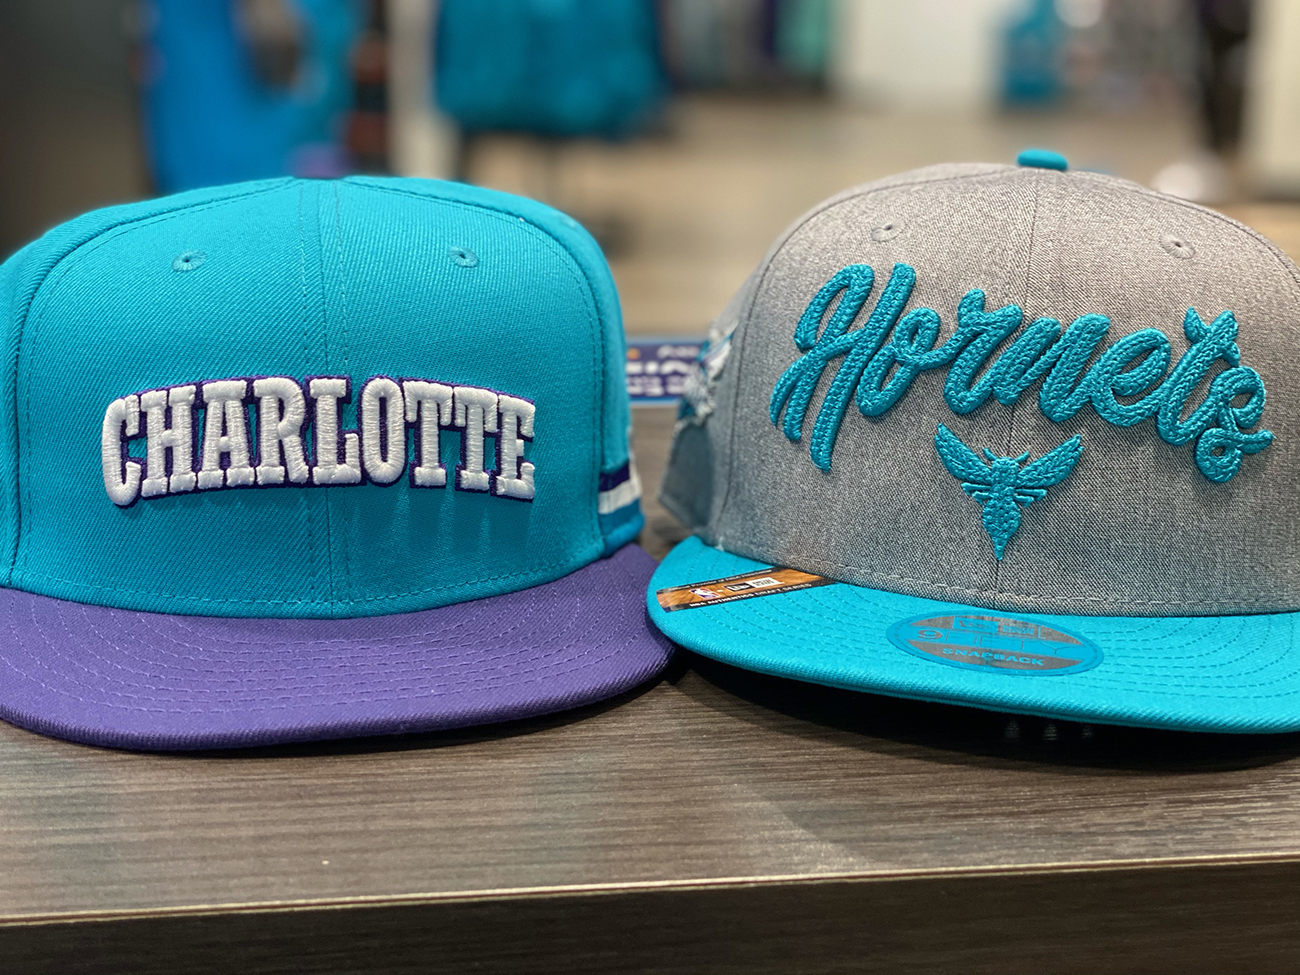 🚨 Breaking: The Charlotte Hornets are fun again